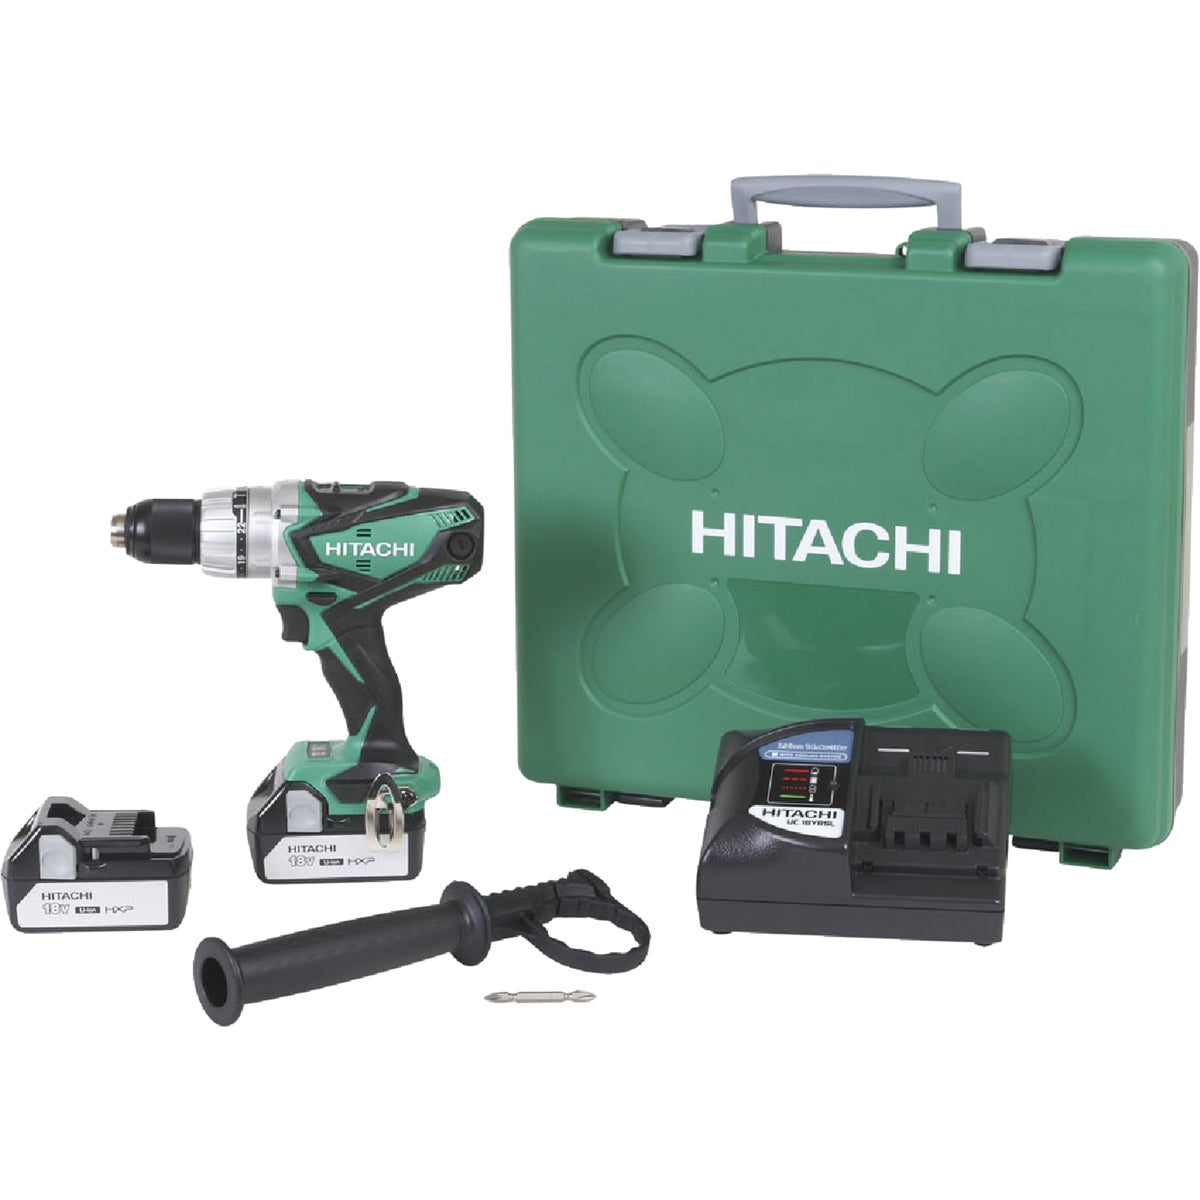 18V LI-ION HAMMERDRILL - DV18DL by Hitachi Power Tools